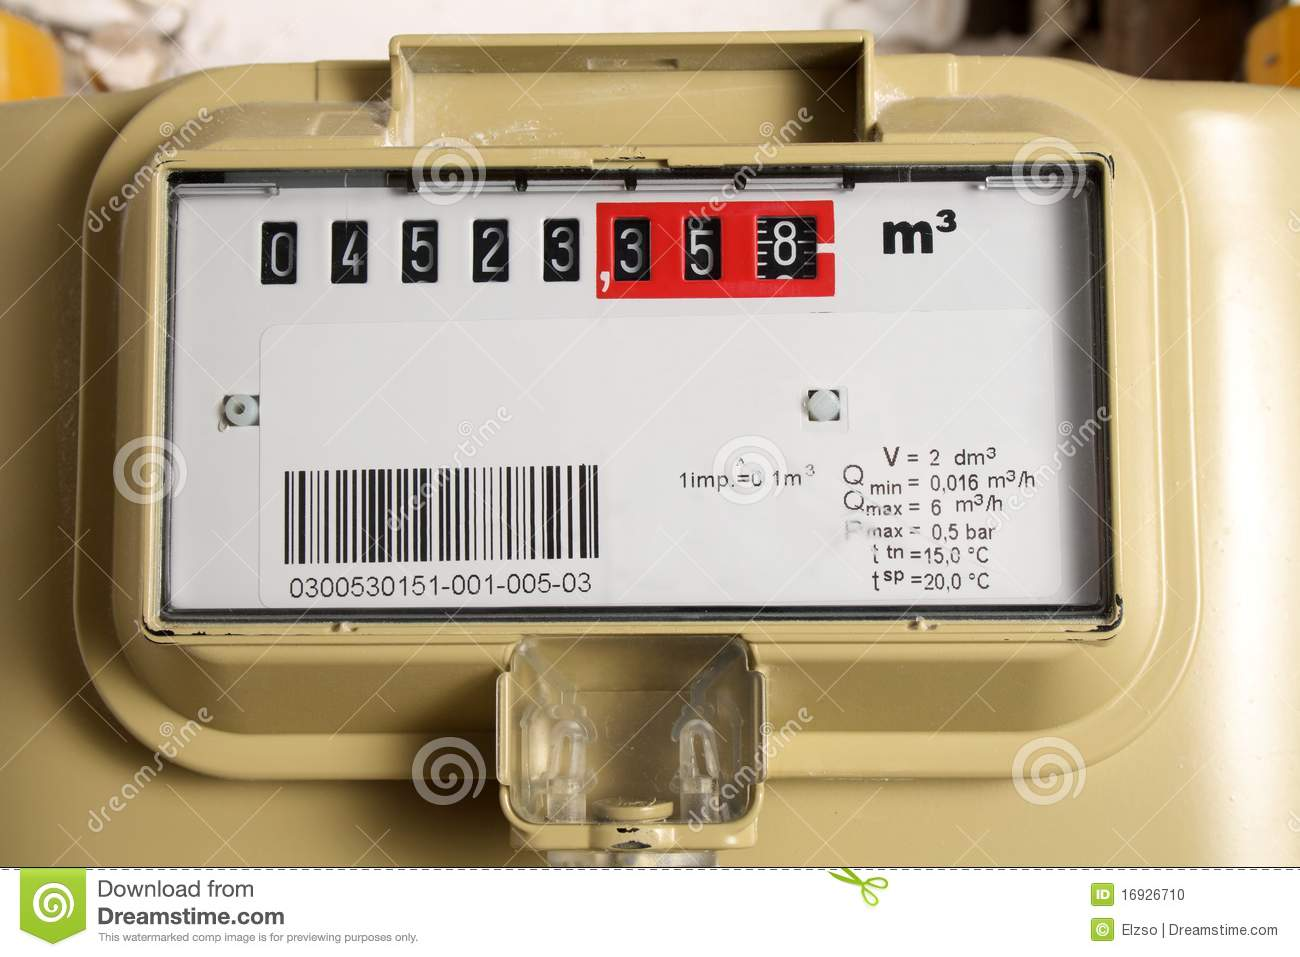 how to read a gas metre